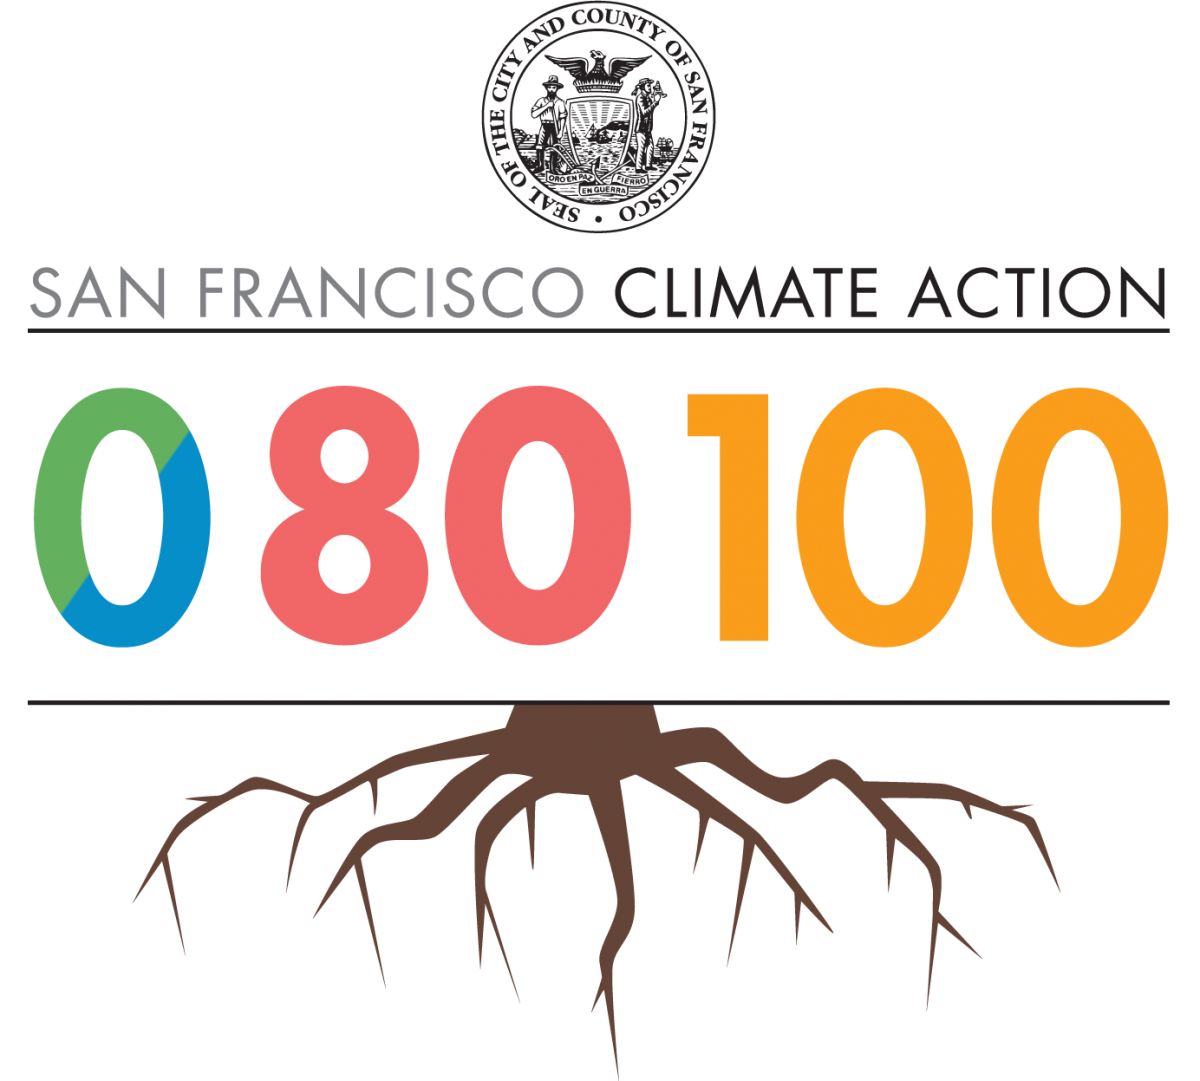 This visualises San Francisco's carbon neutral goals. Though cities have different challenges, they often need the same solutions.